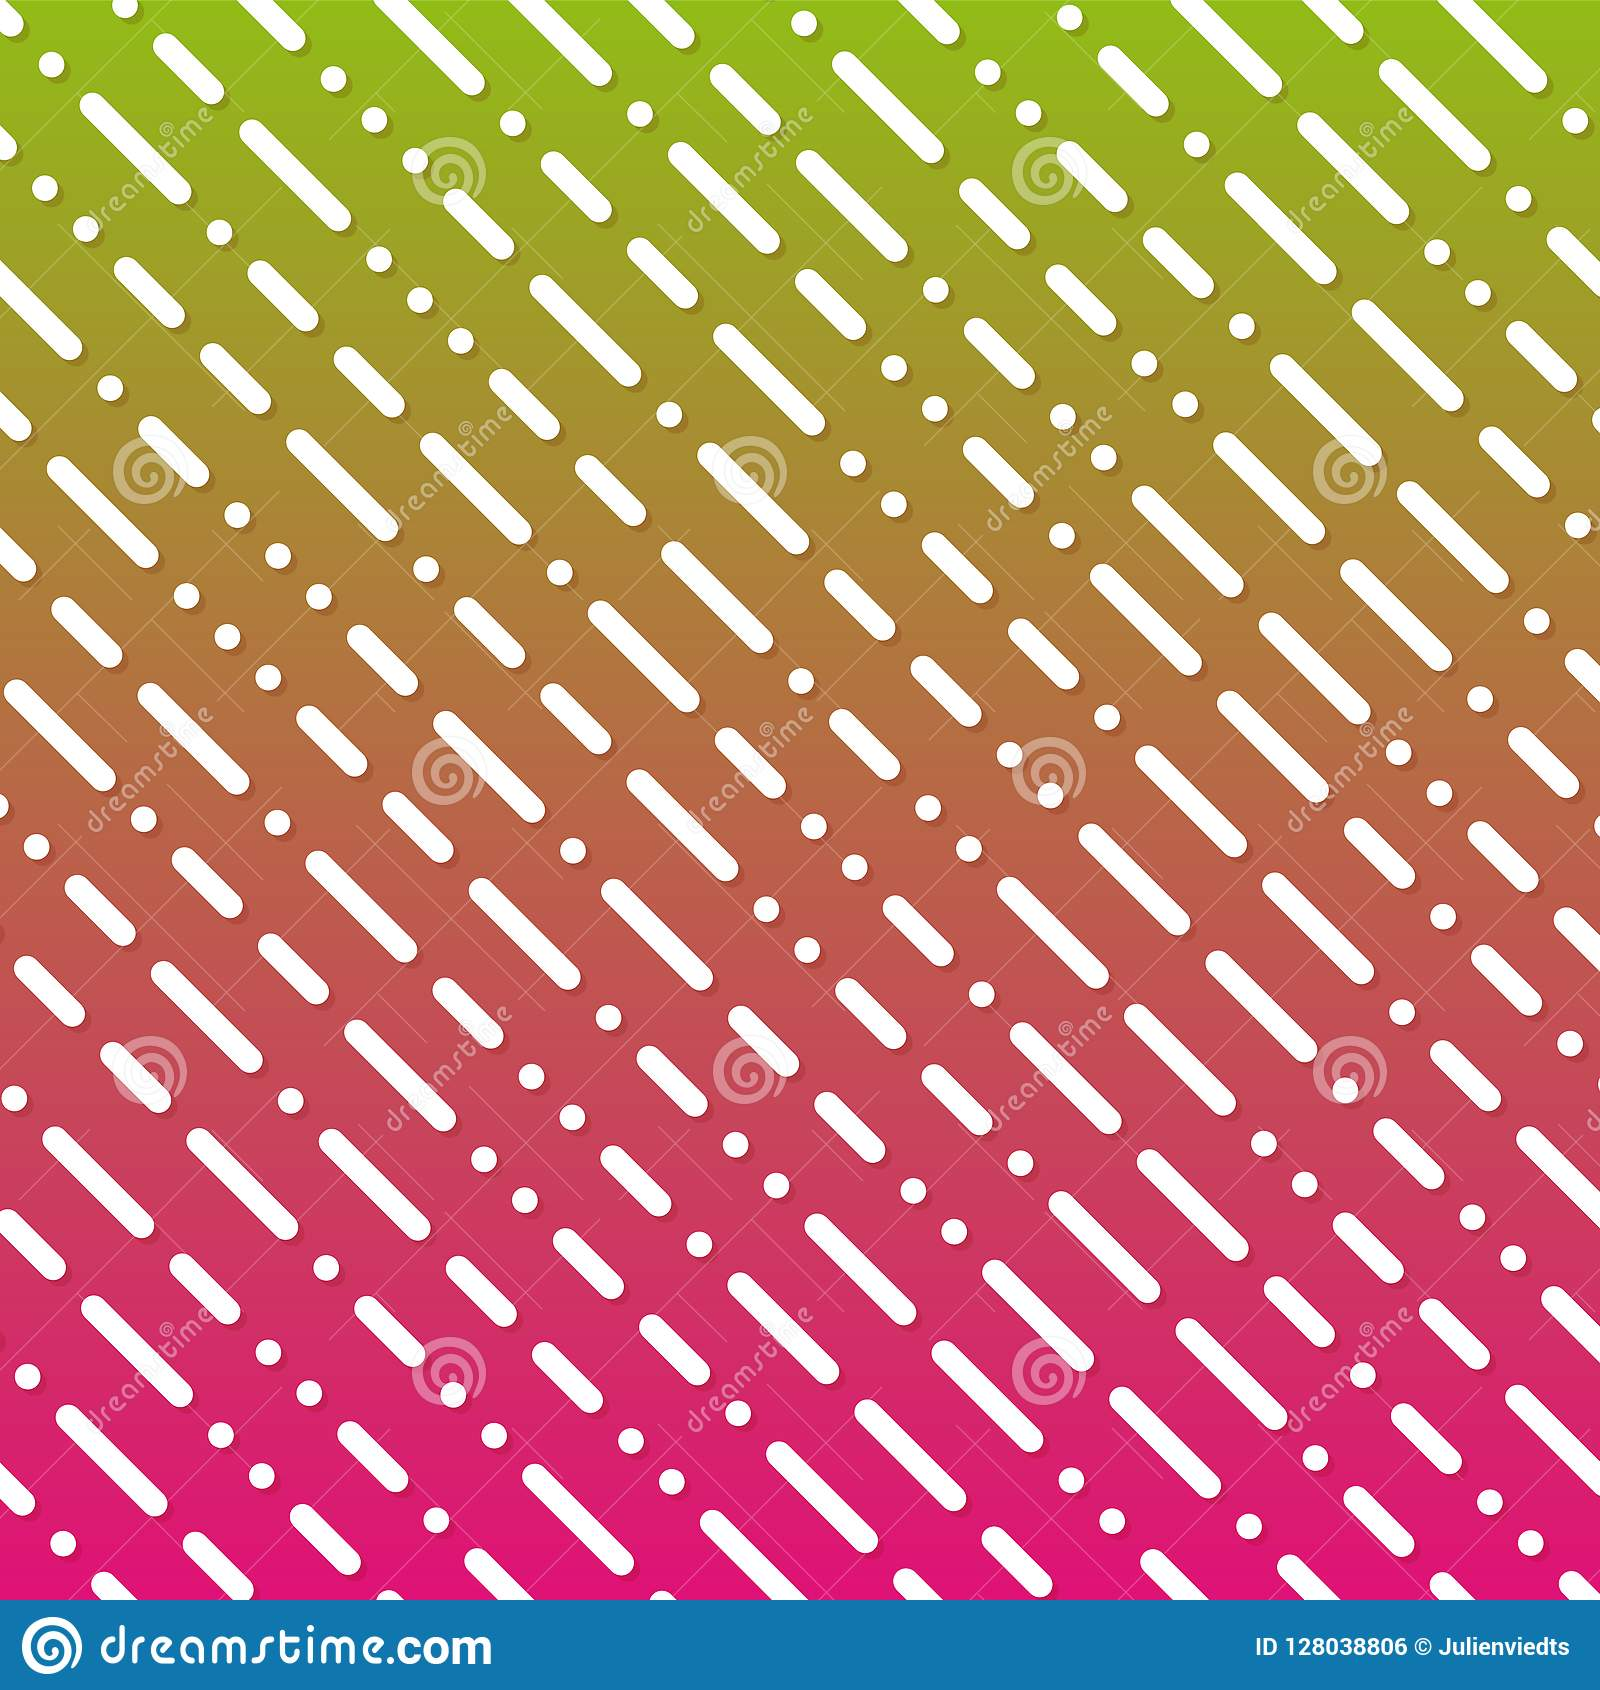 Geometric Line Gradient Background. Modern Abstract Pattern Eps10 Vector